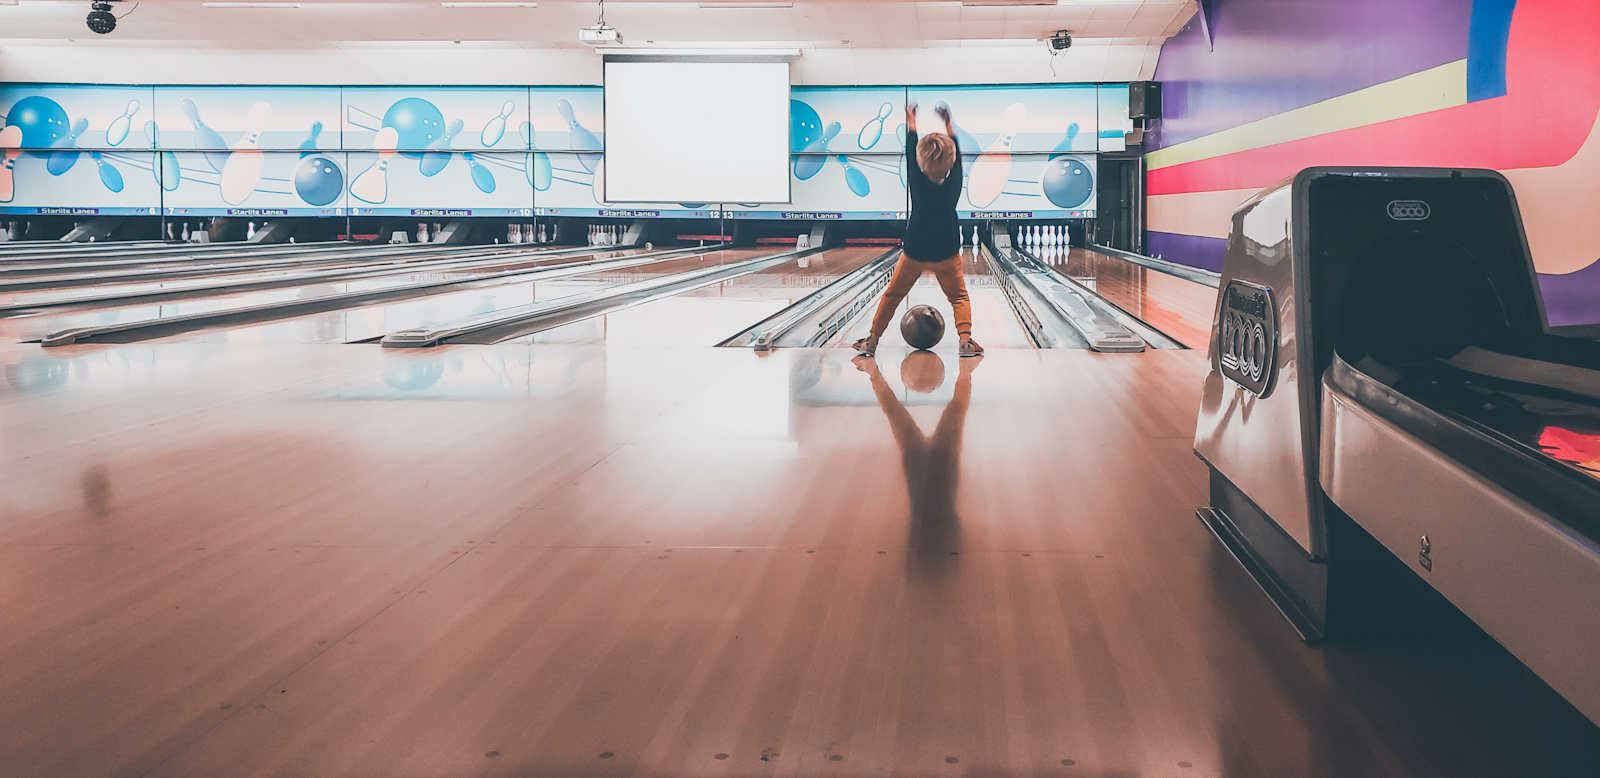 Zone Bowling of Joondalup